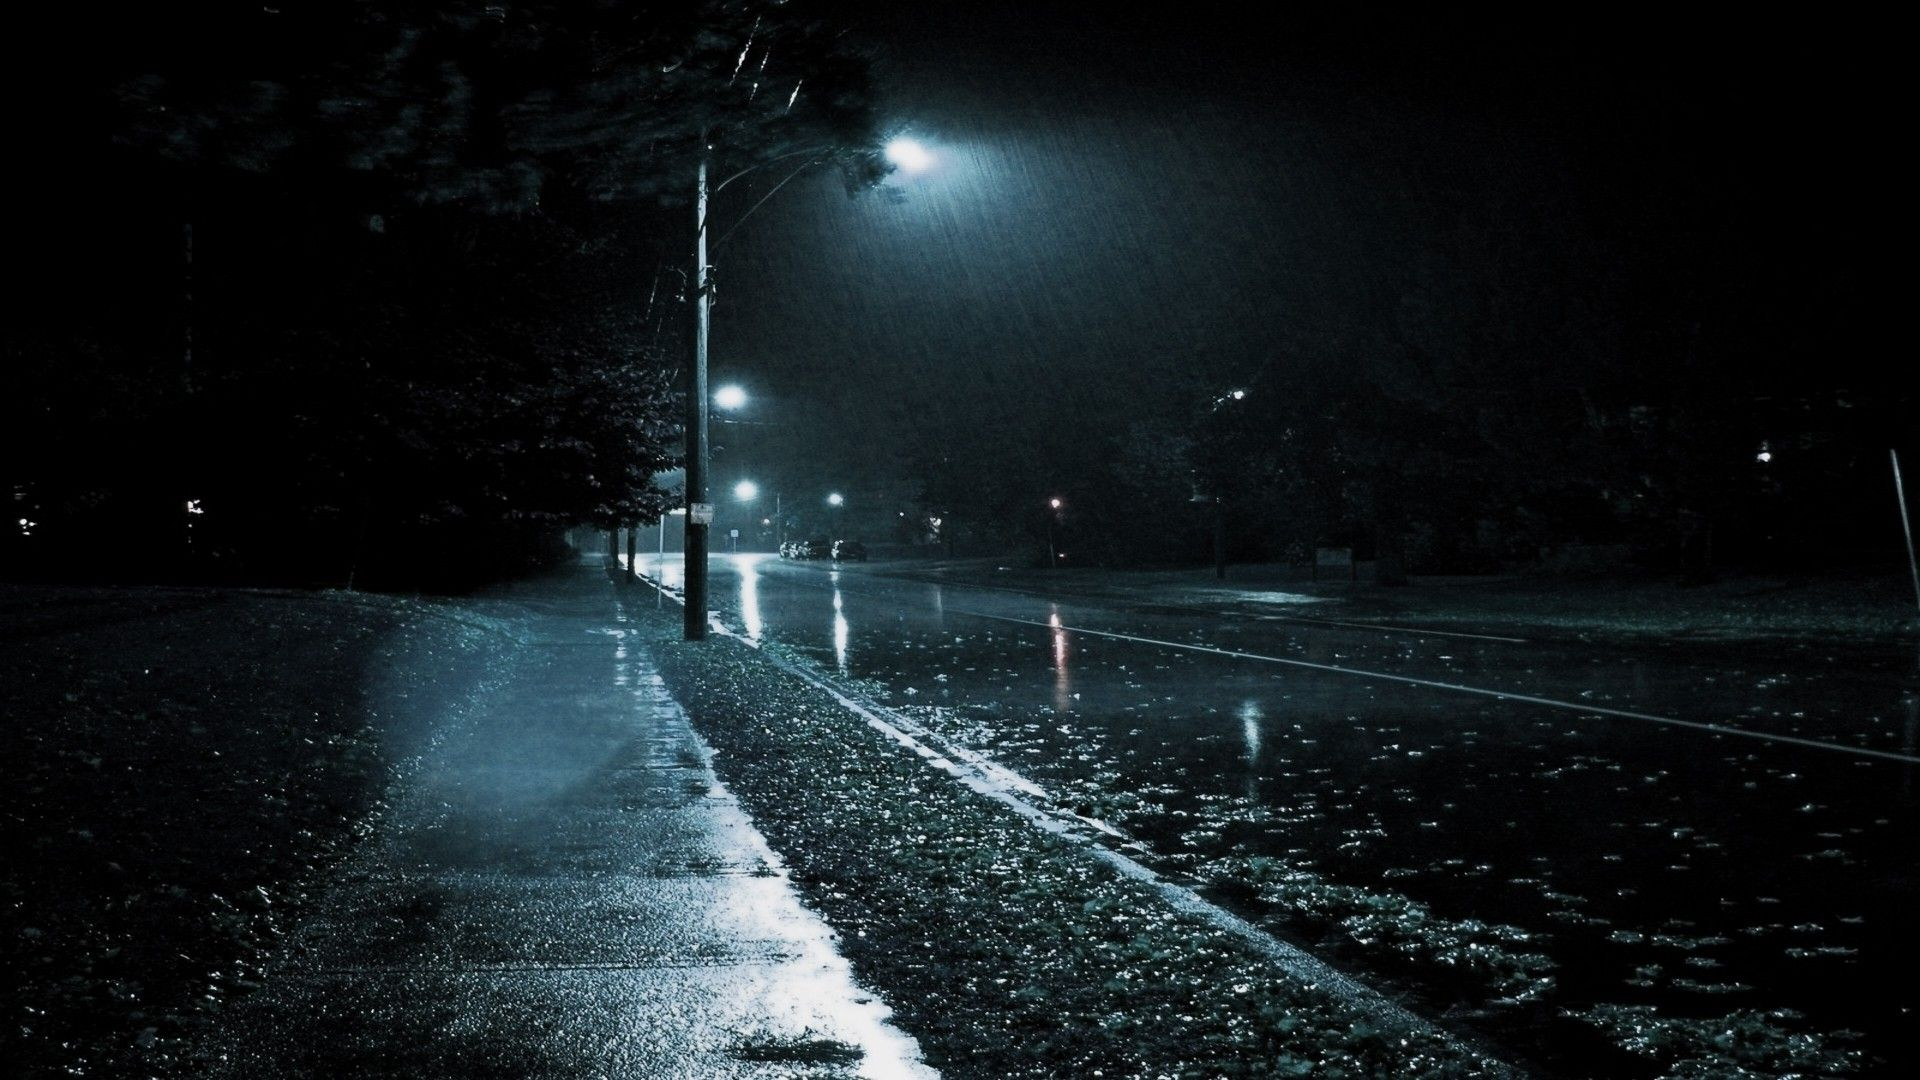 21 rain wallpapers backgrounds images pictures design trends